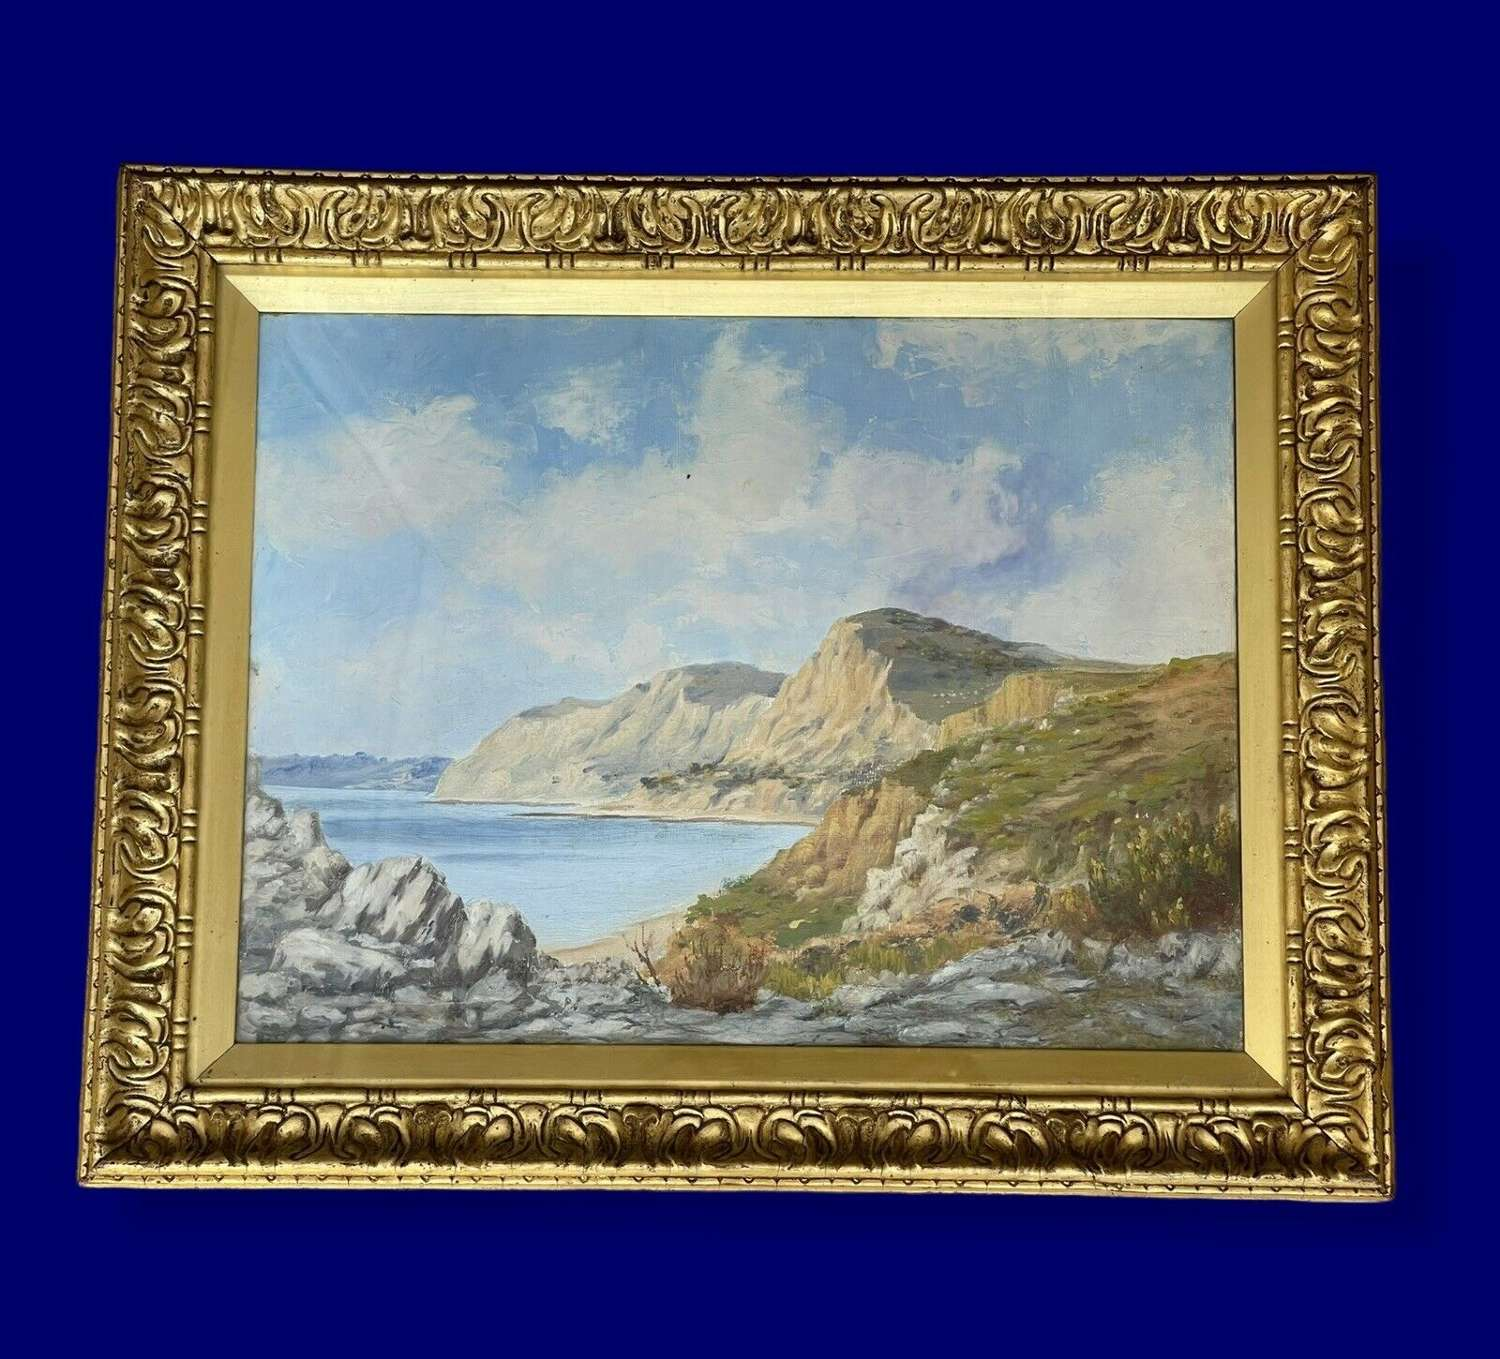 Sandy cove oil on canvas painting